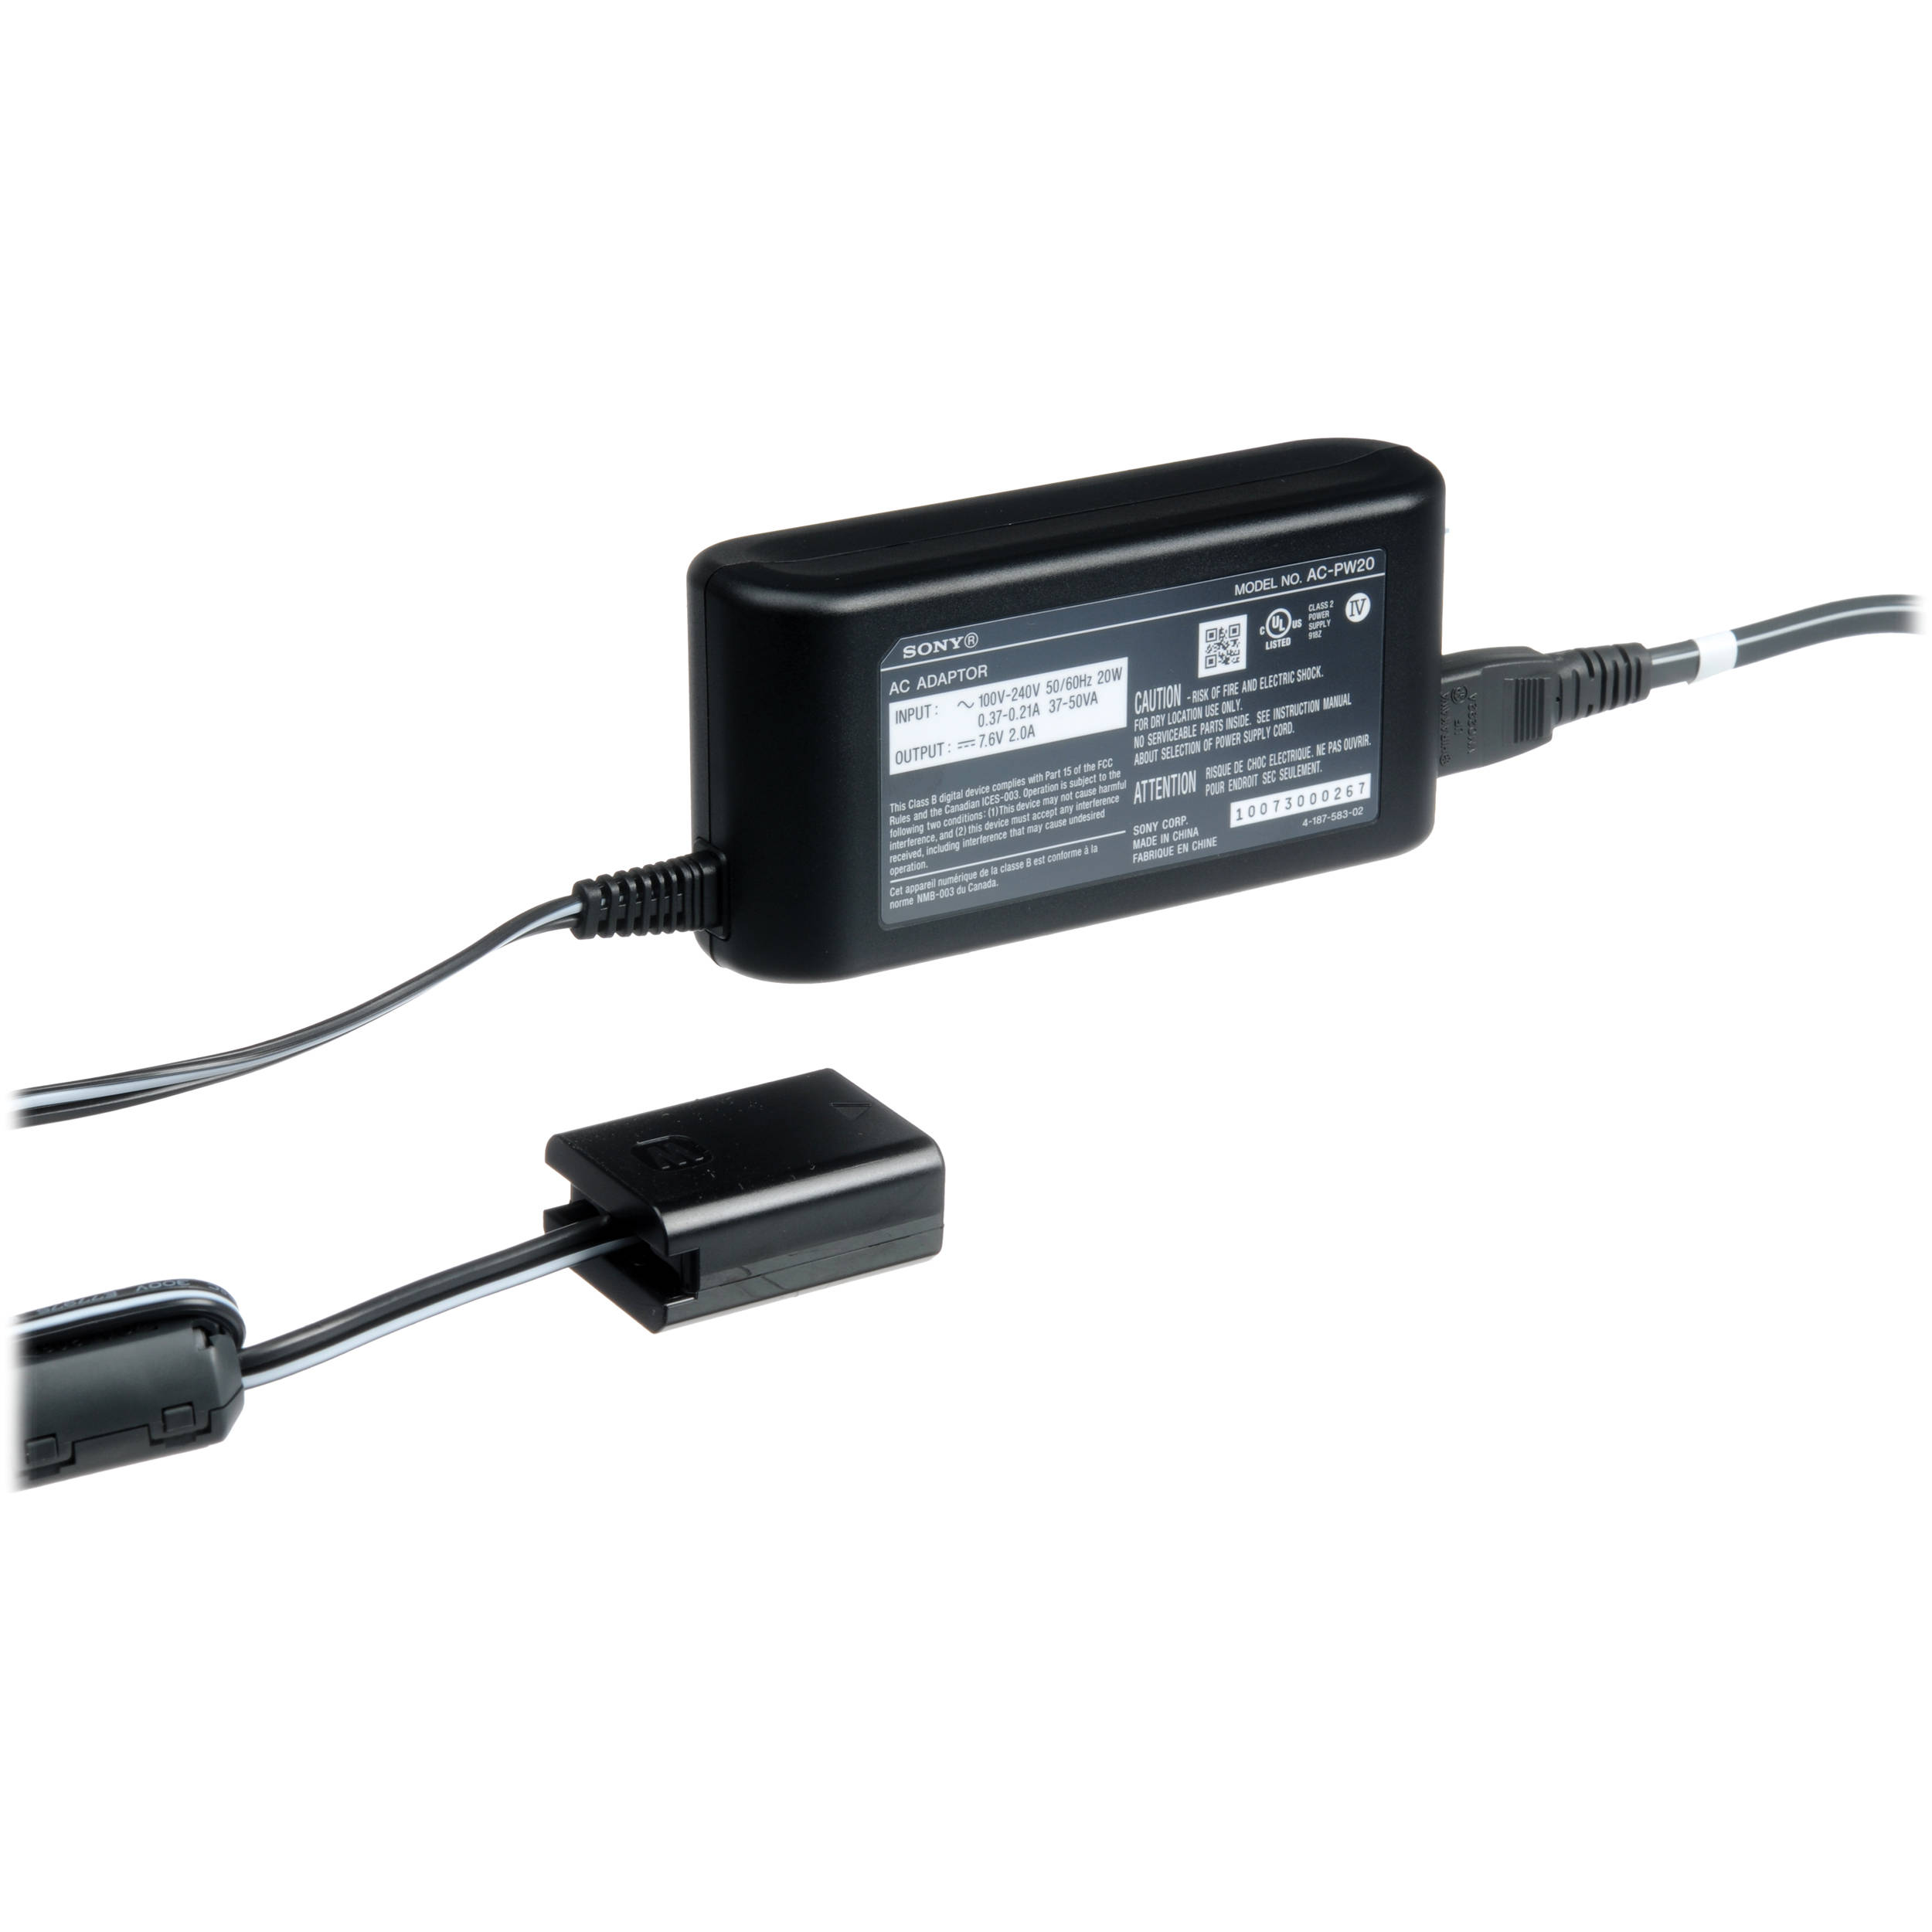 Sony Ac Adapter For Select Sony Cameras Acpw20 B Amp H Photo Video